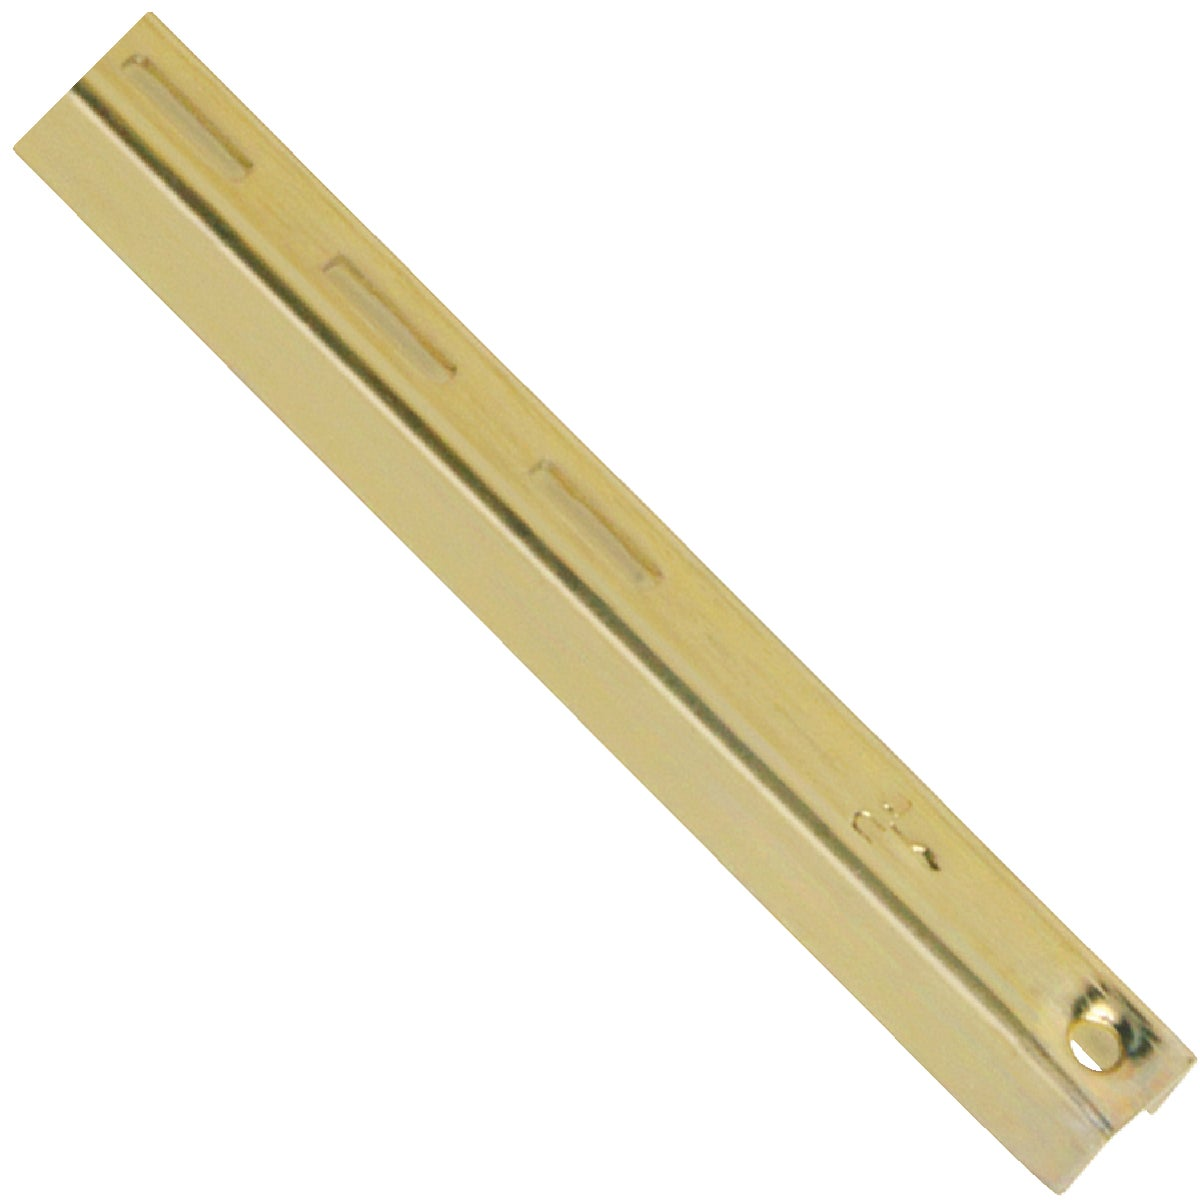 "24"" BRASS SHELF STANDARD - 80BR-24 by Knape & Vogt Mfg Co"